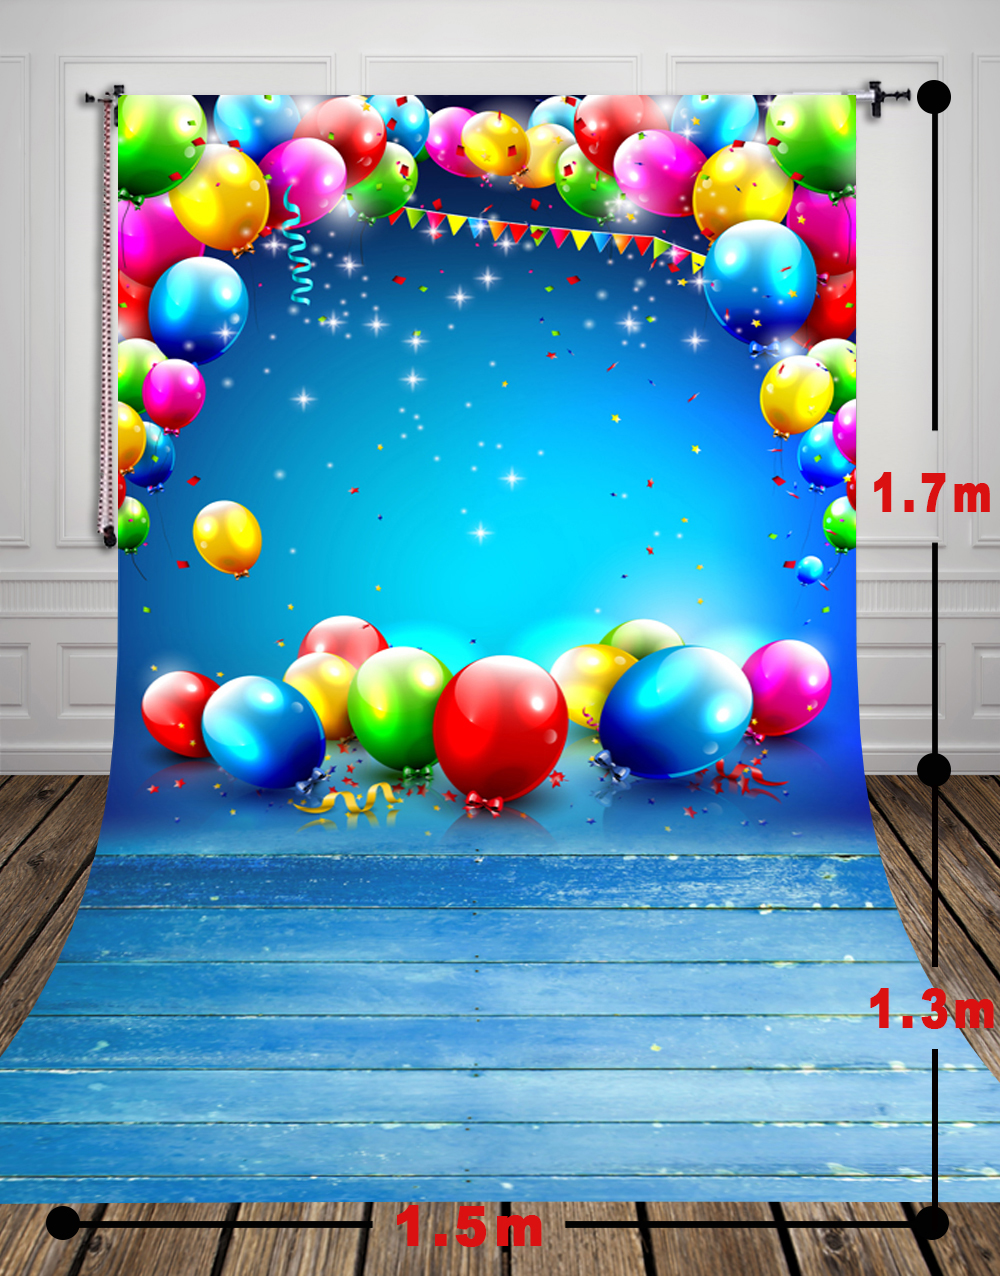 HUAYI 5x10ft Art fabric Birthday Party Backdrop Photography For Newborn Drop Background D-9944